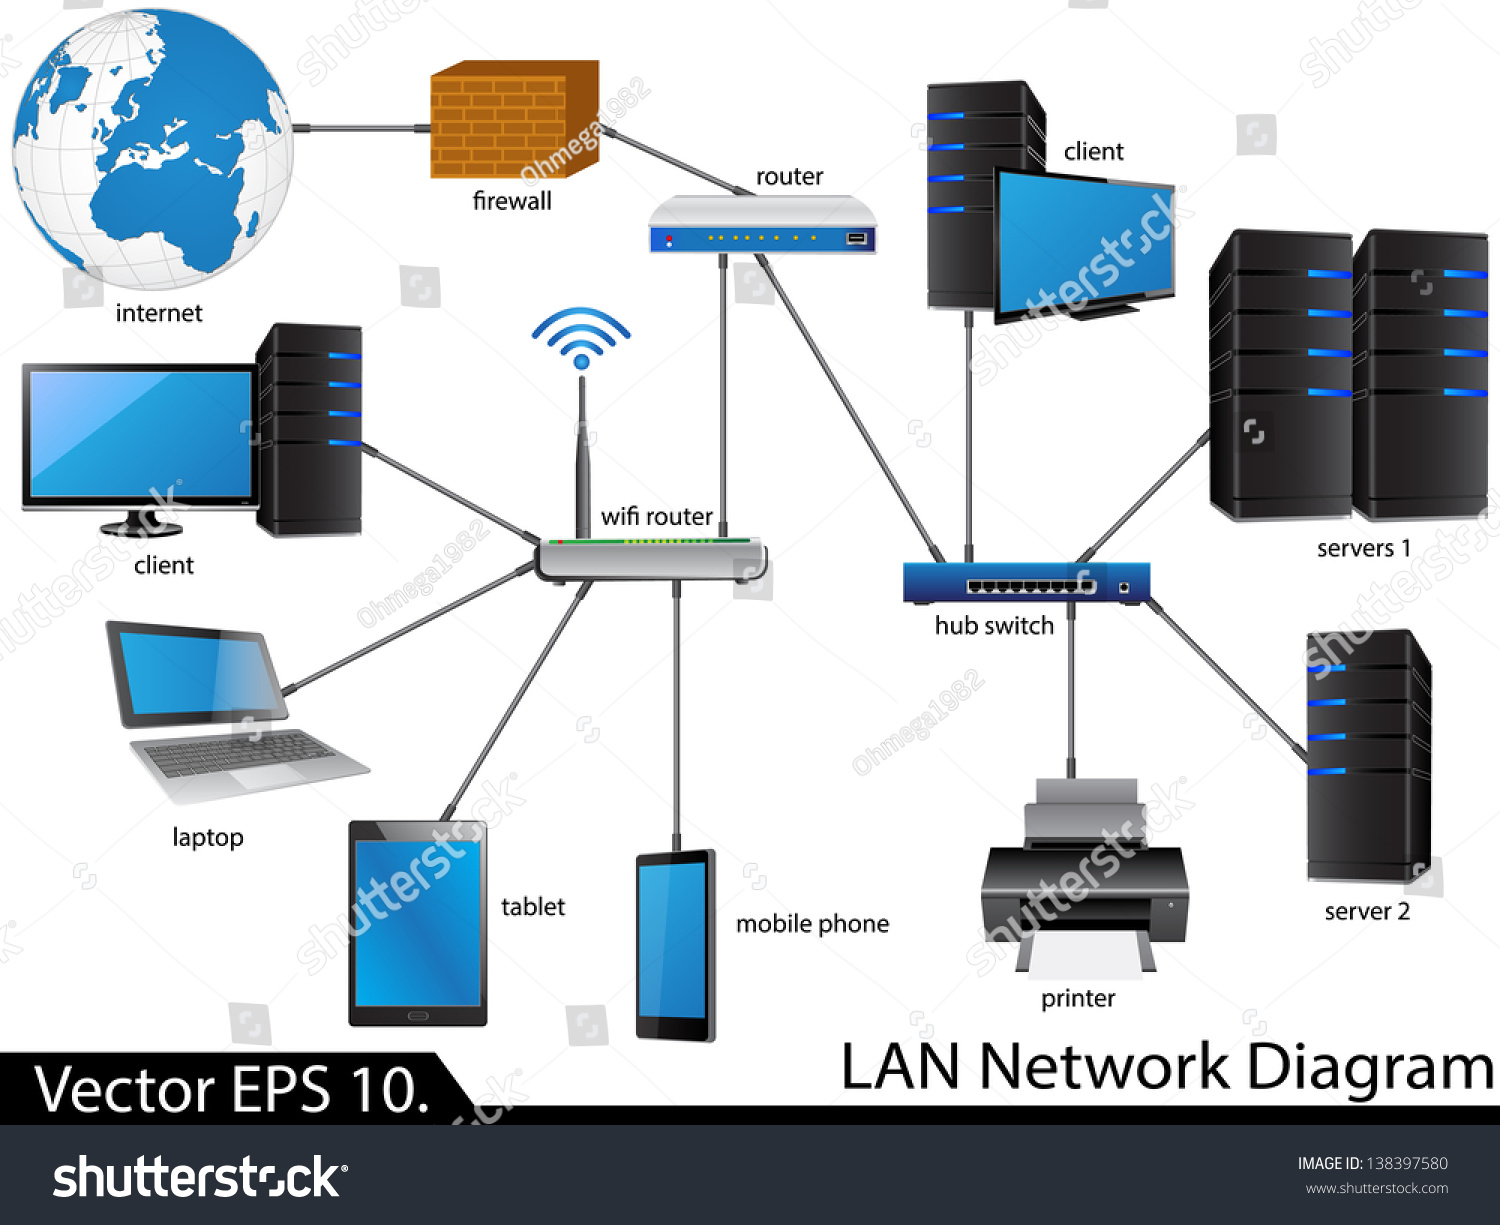 Lan Network Diagram Vector Illustrator Eps Stock Vector 138397580 ...